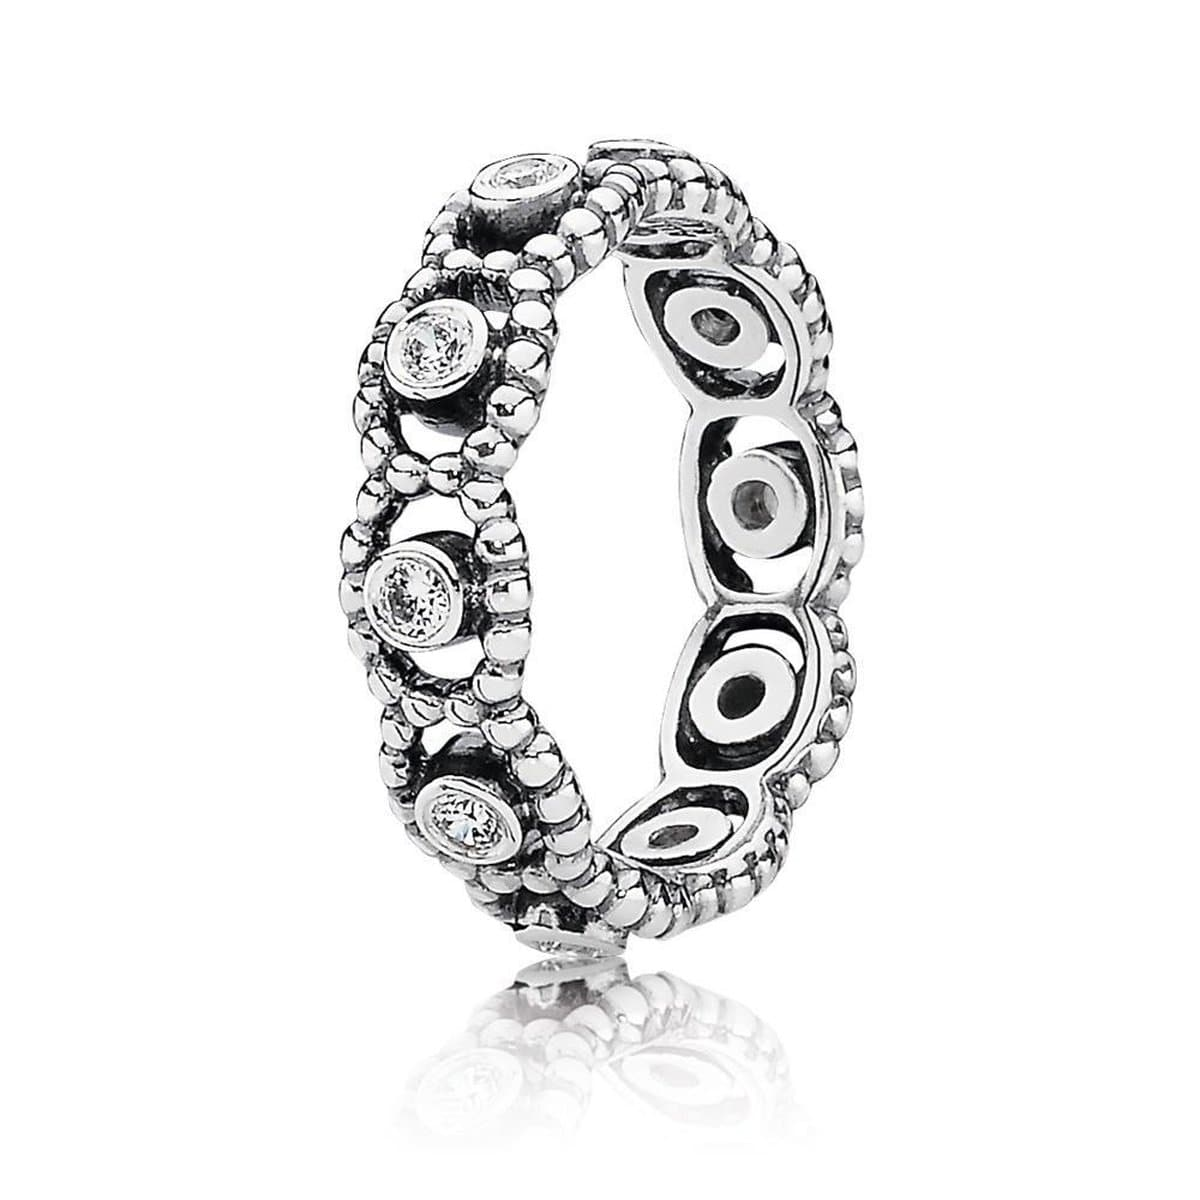 Her Majesty Clear Cubic Zirconia Ring - 190881CZ-Pandora-Renee Taylor Gallery